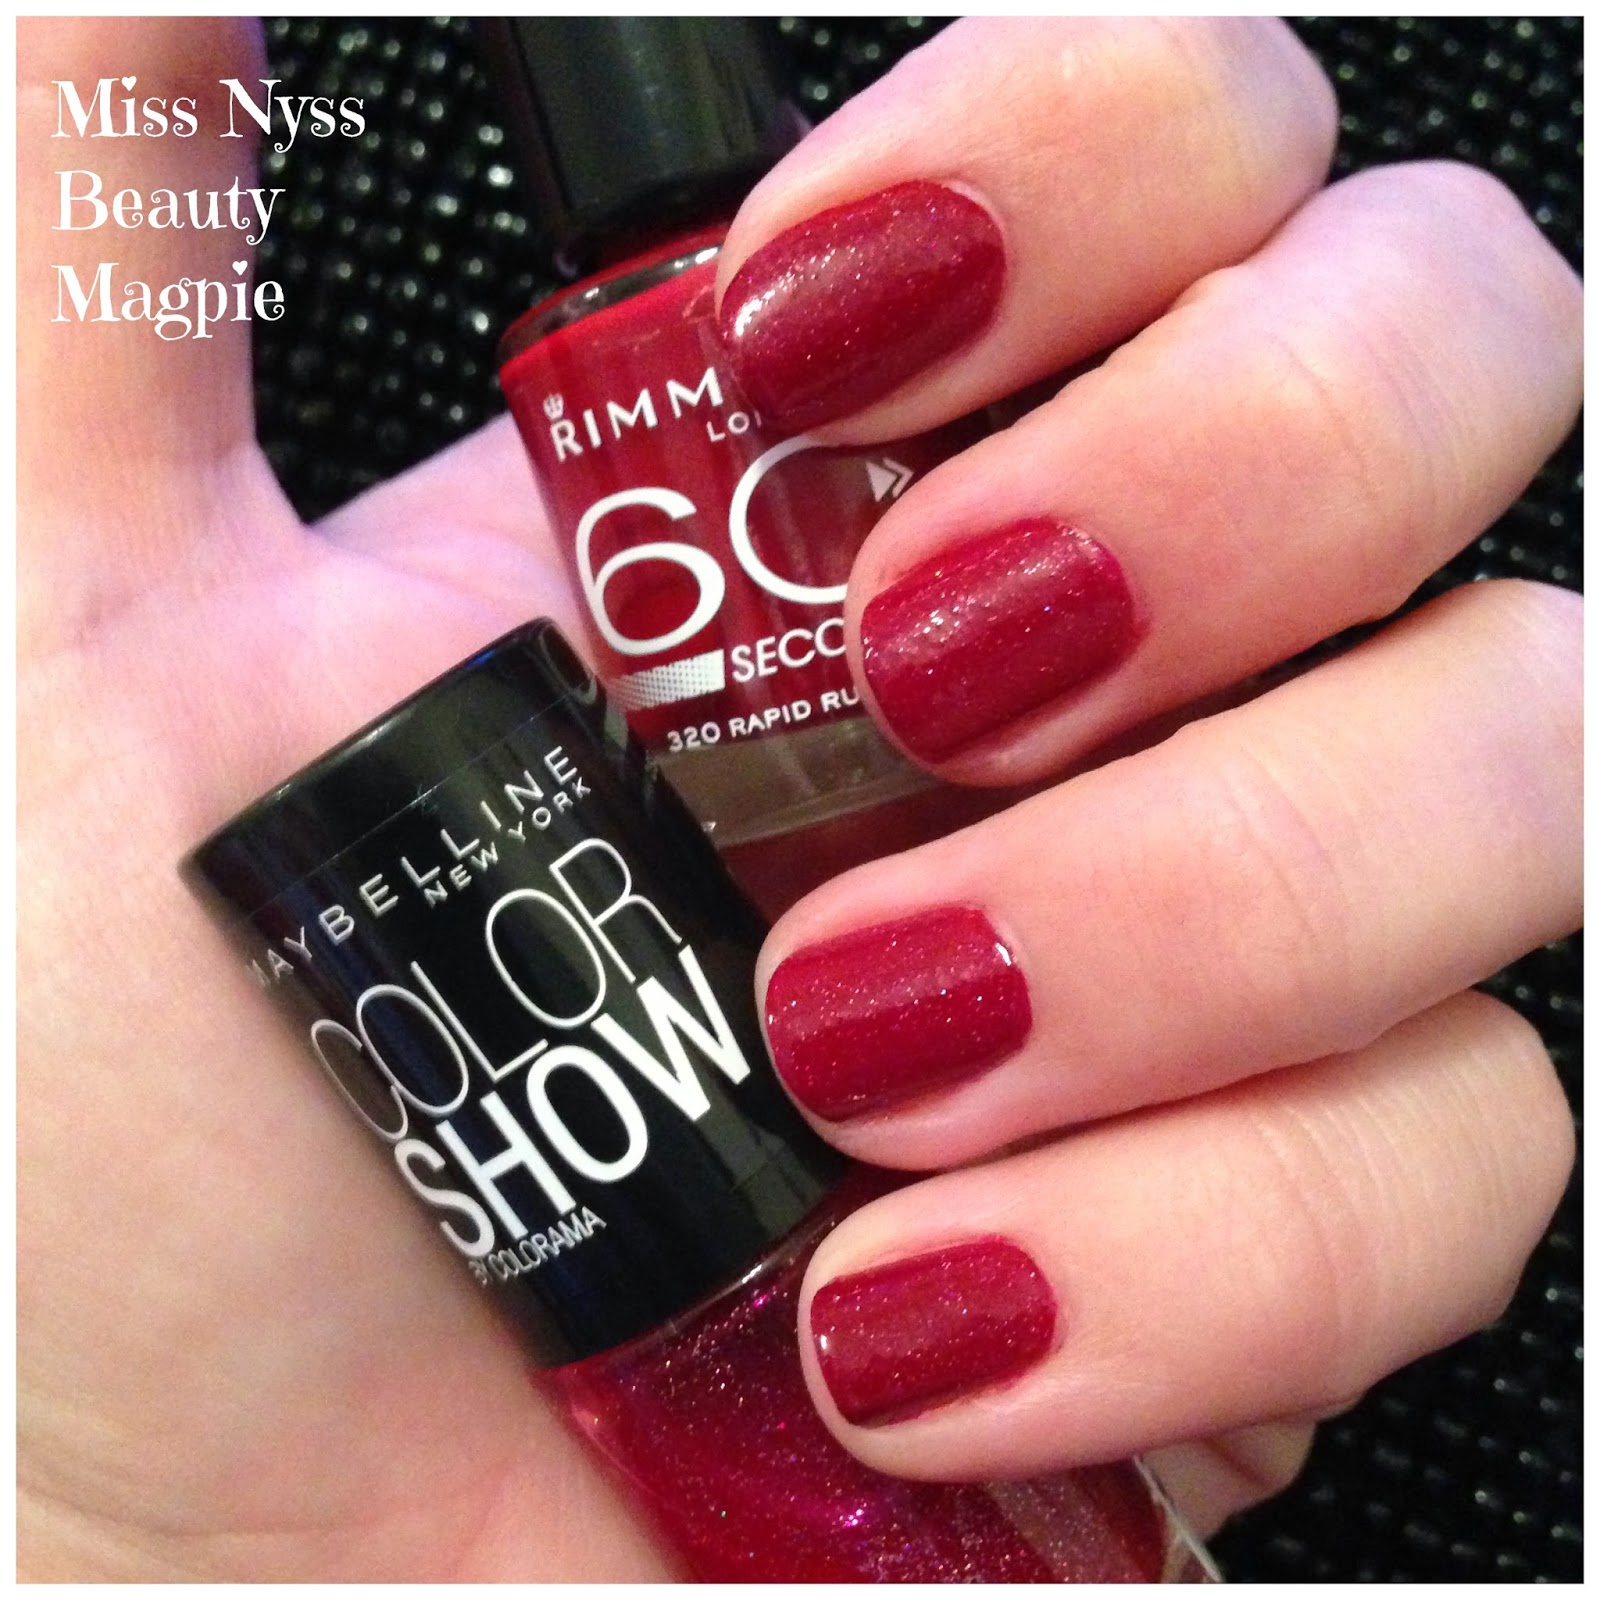 ☆ Miss Nyss Beauty Magpie ☆: NOTD - Rimmel 60 Seconds Nail Polish ...